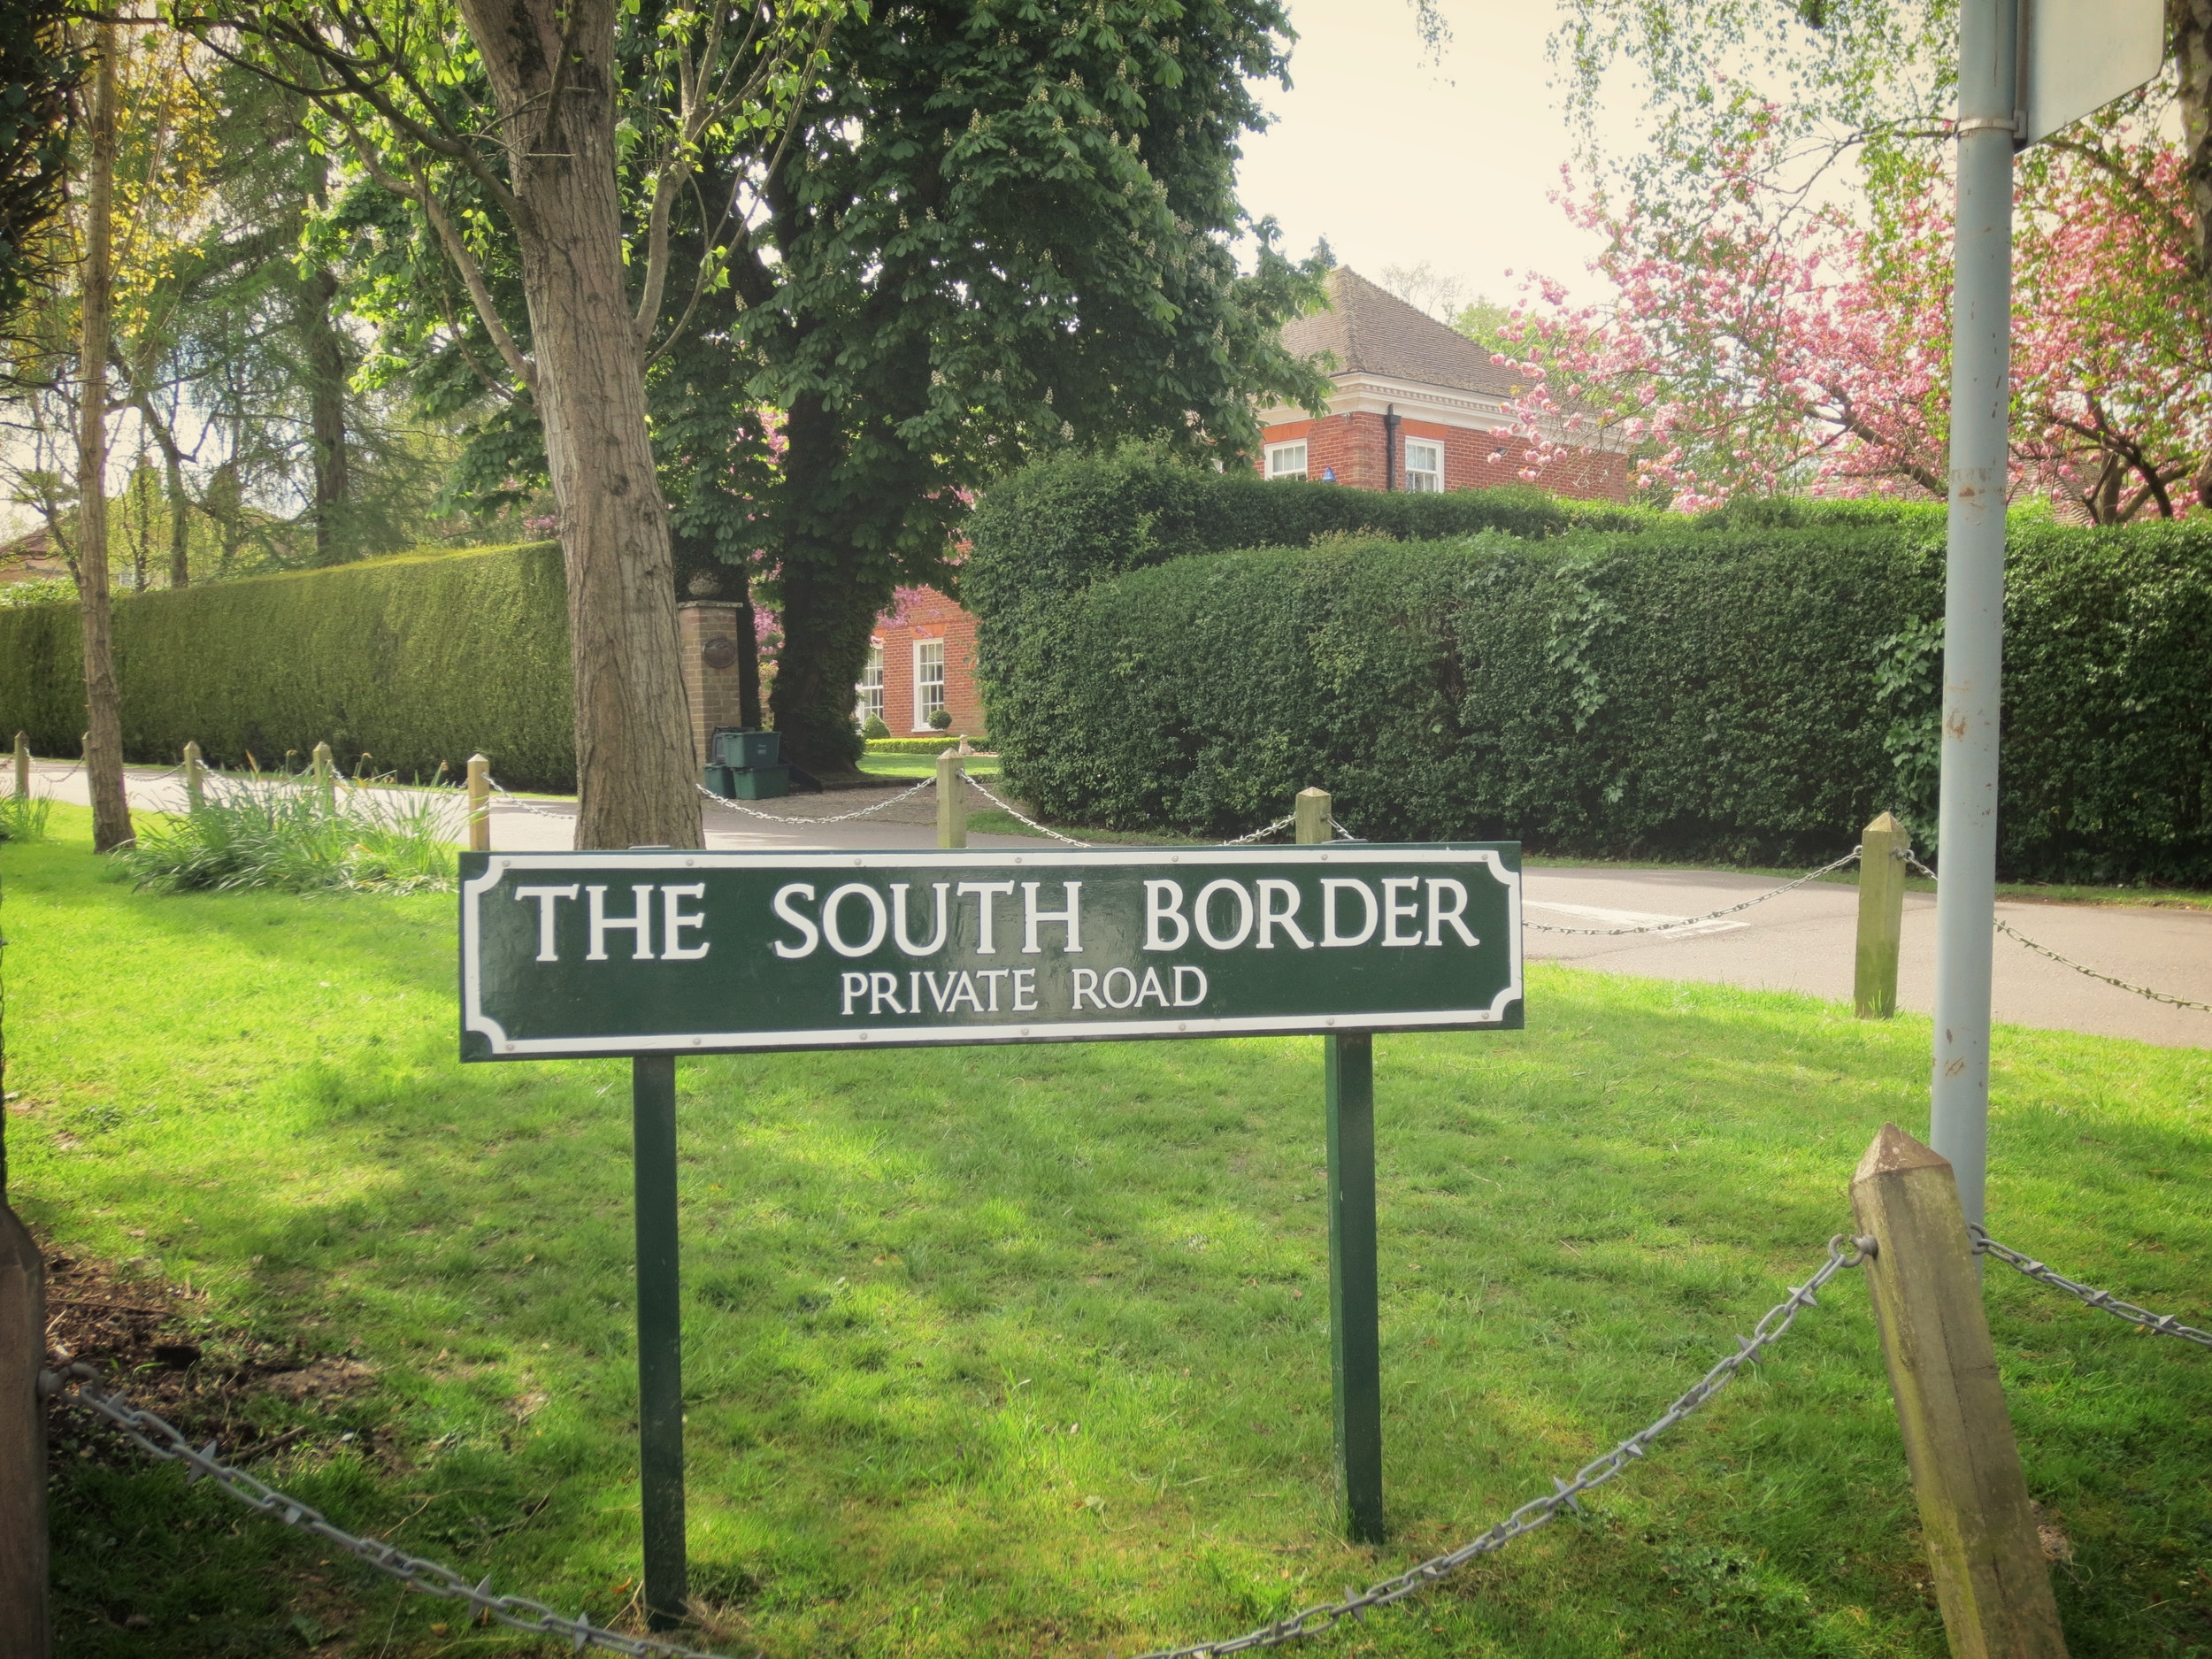 THE SOUTH BORDER